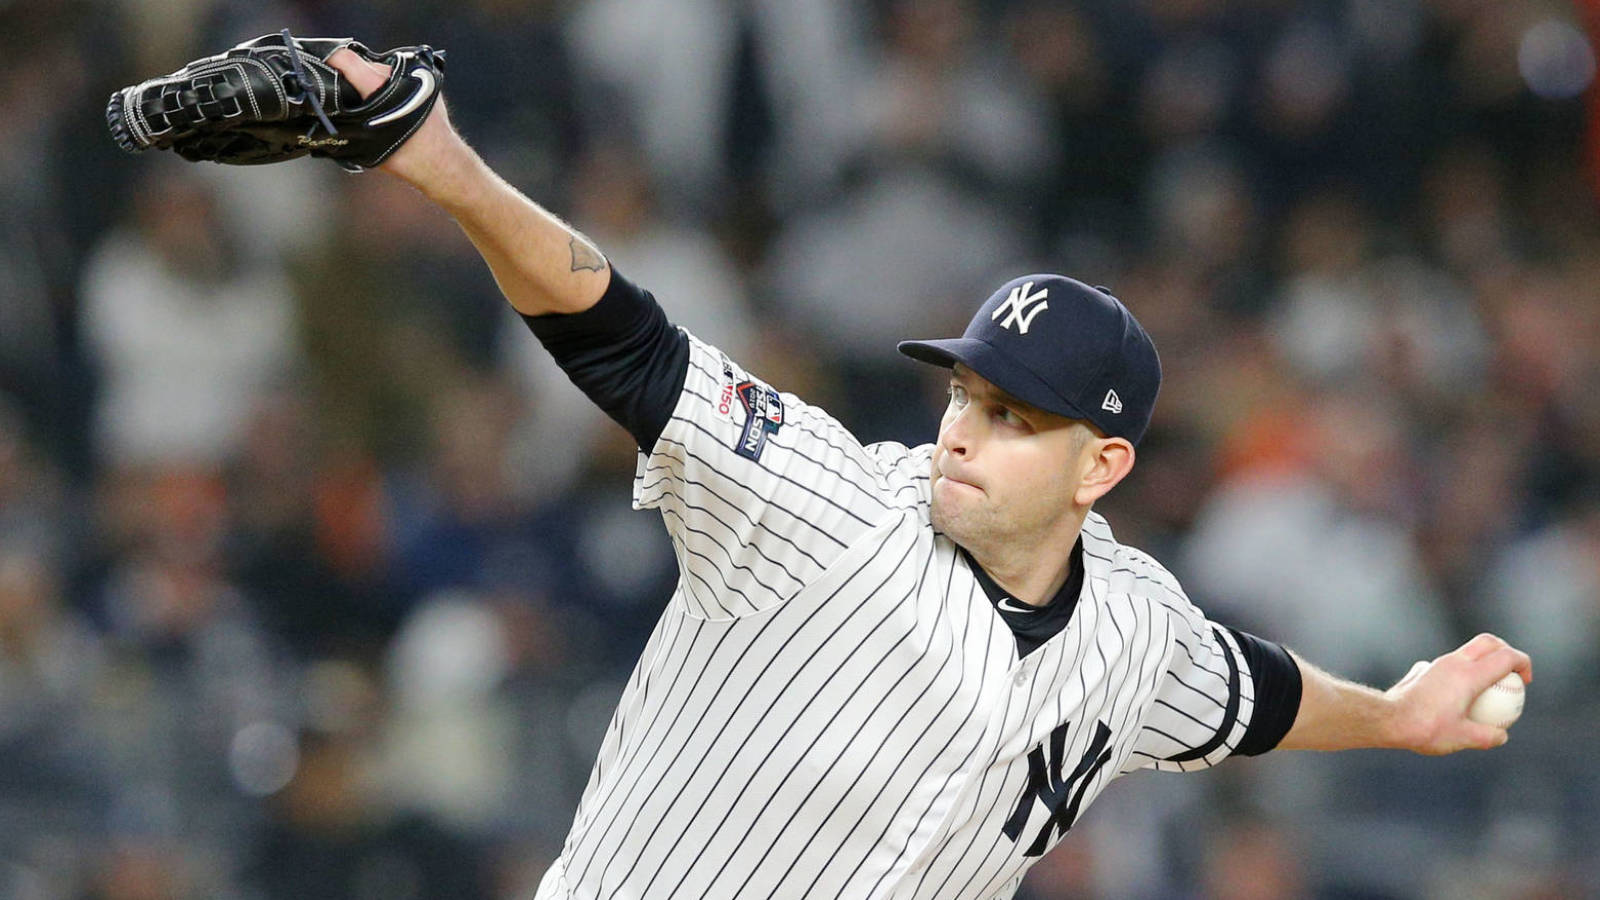 Yankees' James Paxton at 'full strength' after back surgery